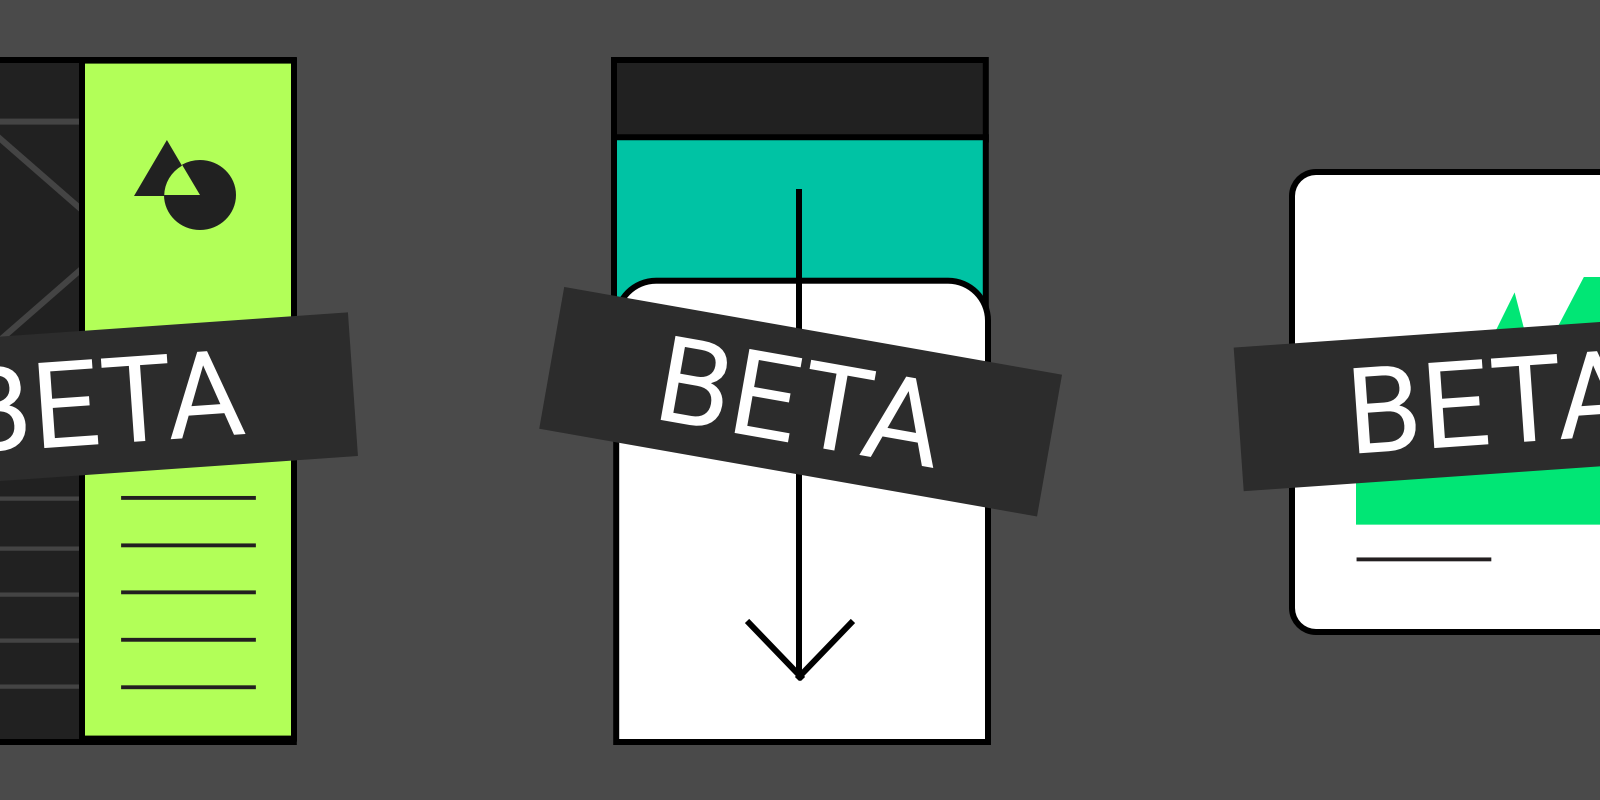 Google's Material Design guidelines now identify components that are still in 'Beta'